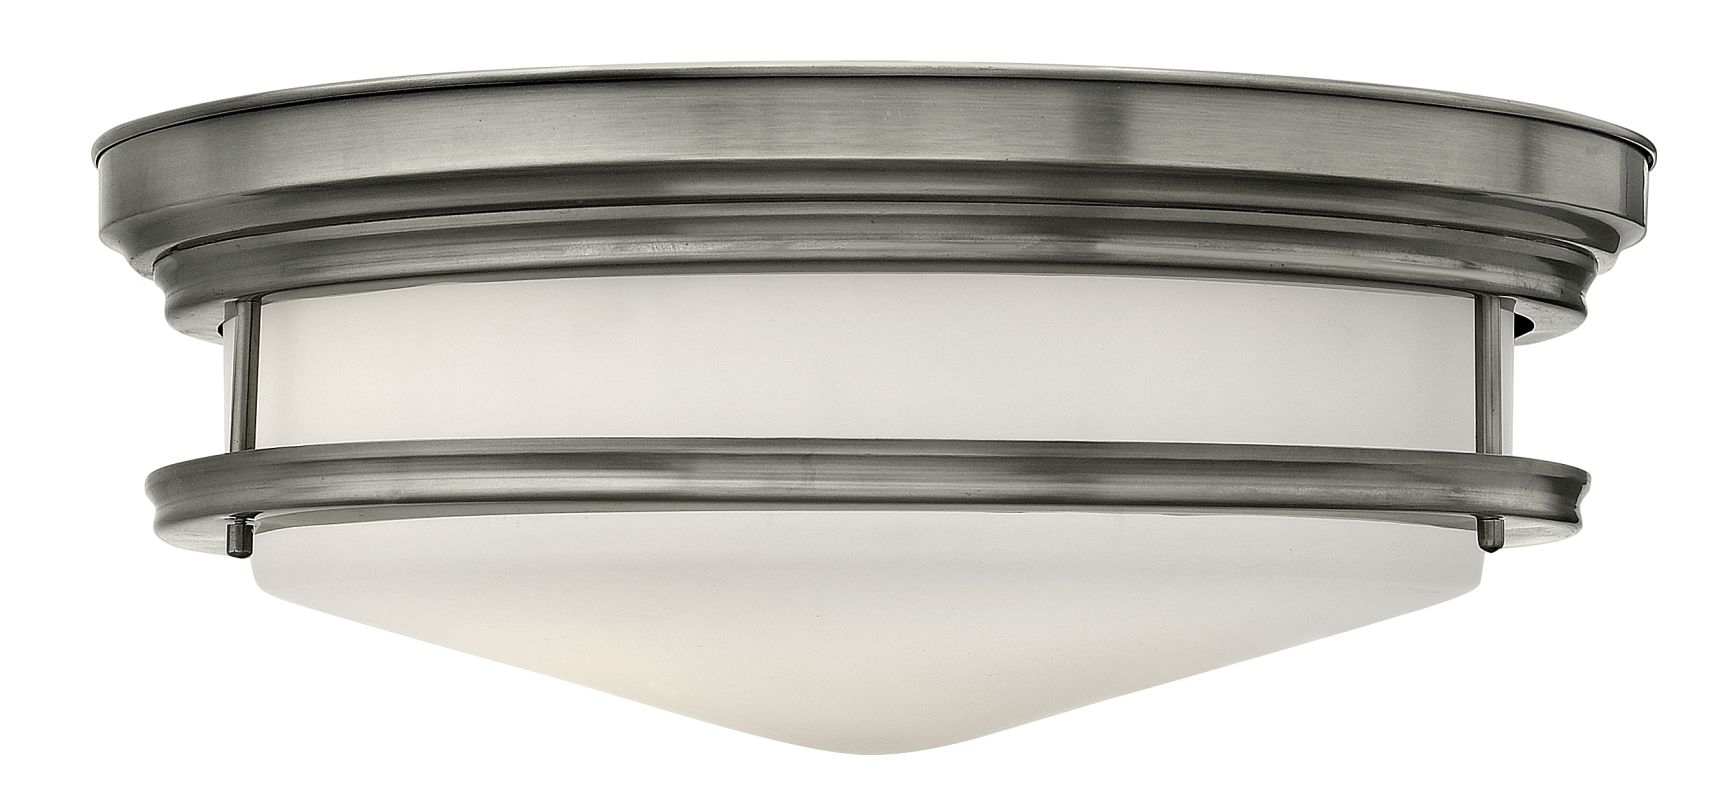 Hinkley Lighting 3304 4 Light Indoor Flush Mount Ceiling Fixture from Sale $399.00 ITEM: bci2173167 ID#:3304AN UPC: 640665330403 :